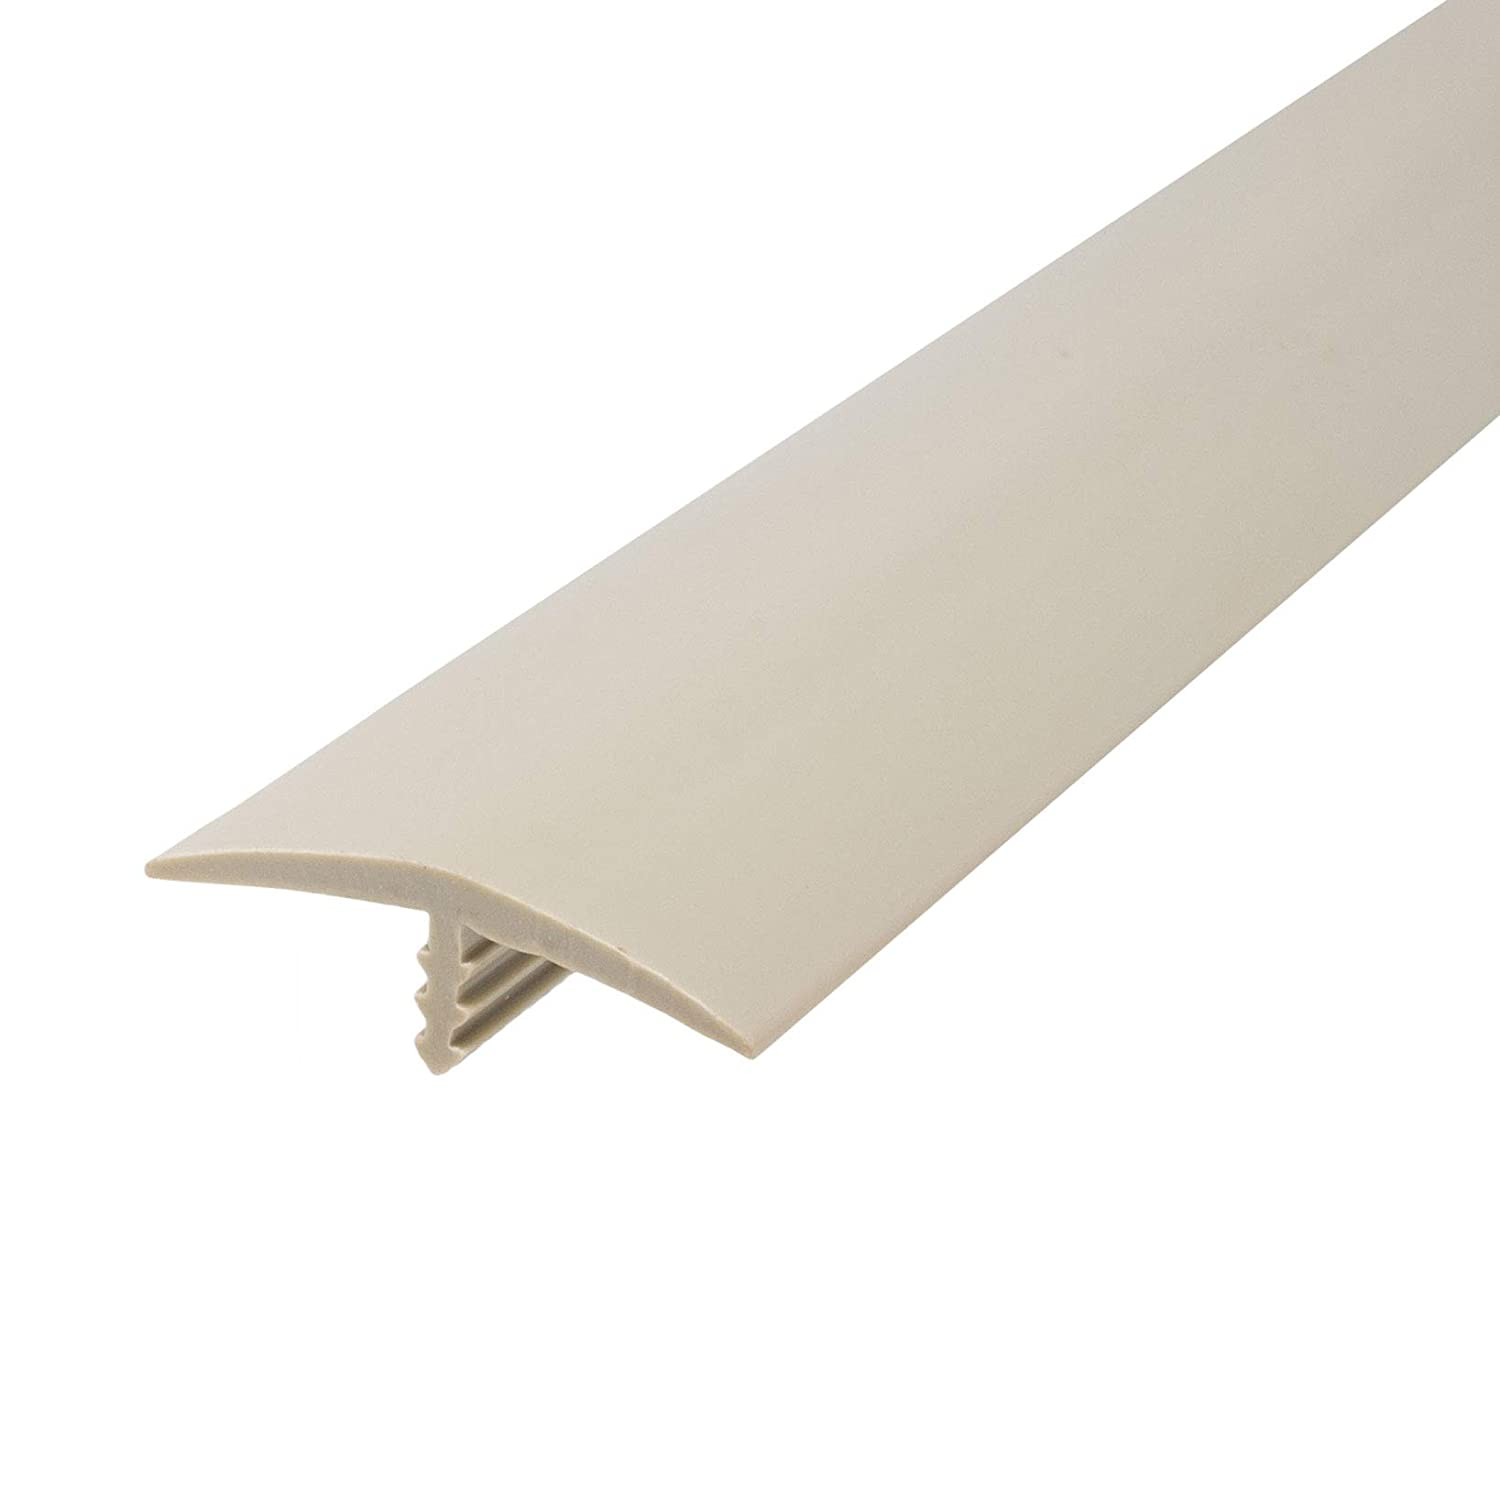 Outwater Plastic T-molding 1-1//4 Inch Putty Grey Flexible Polyethylene Center Barb Tee Moulding 250 Foot Coil